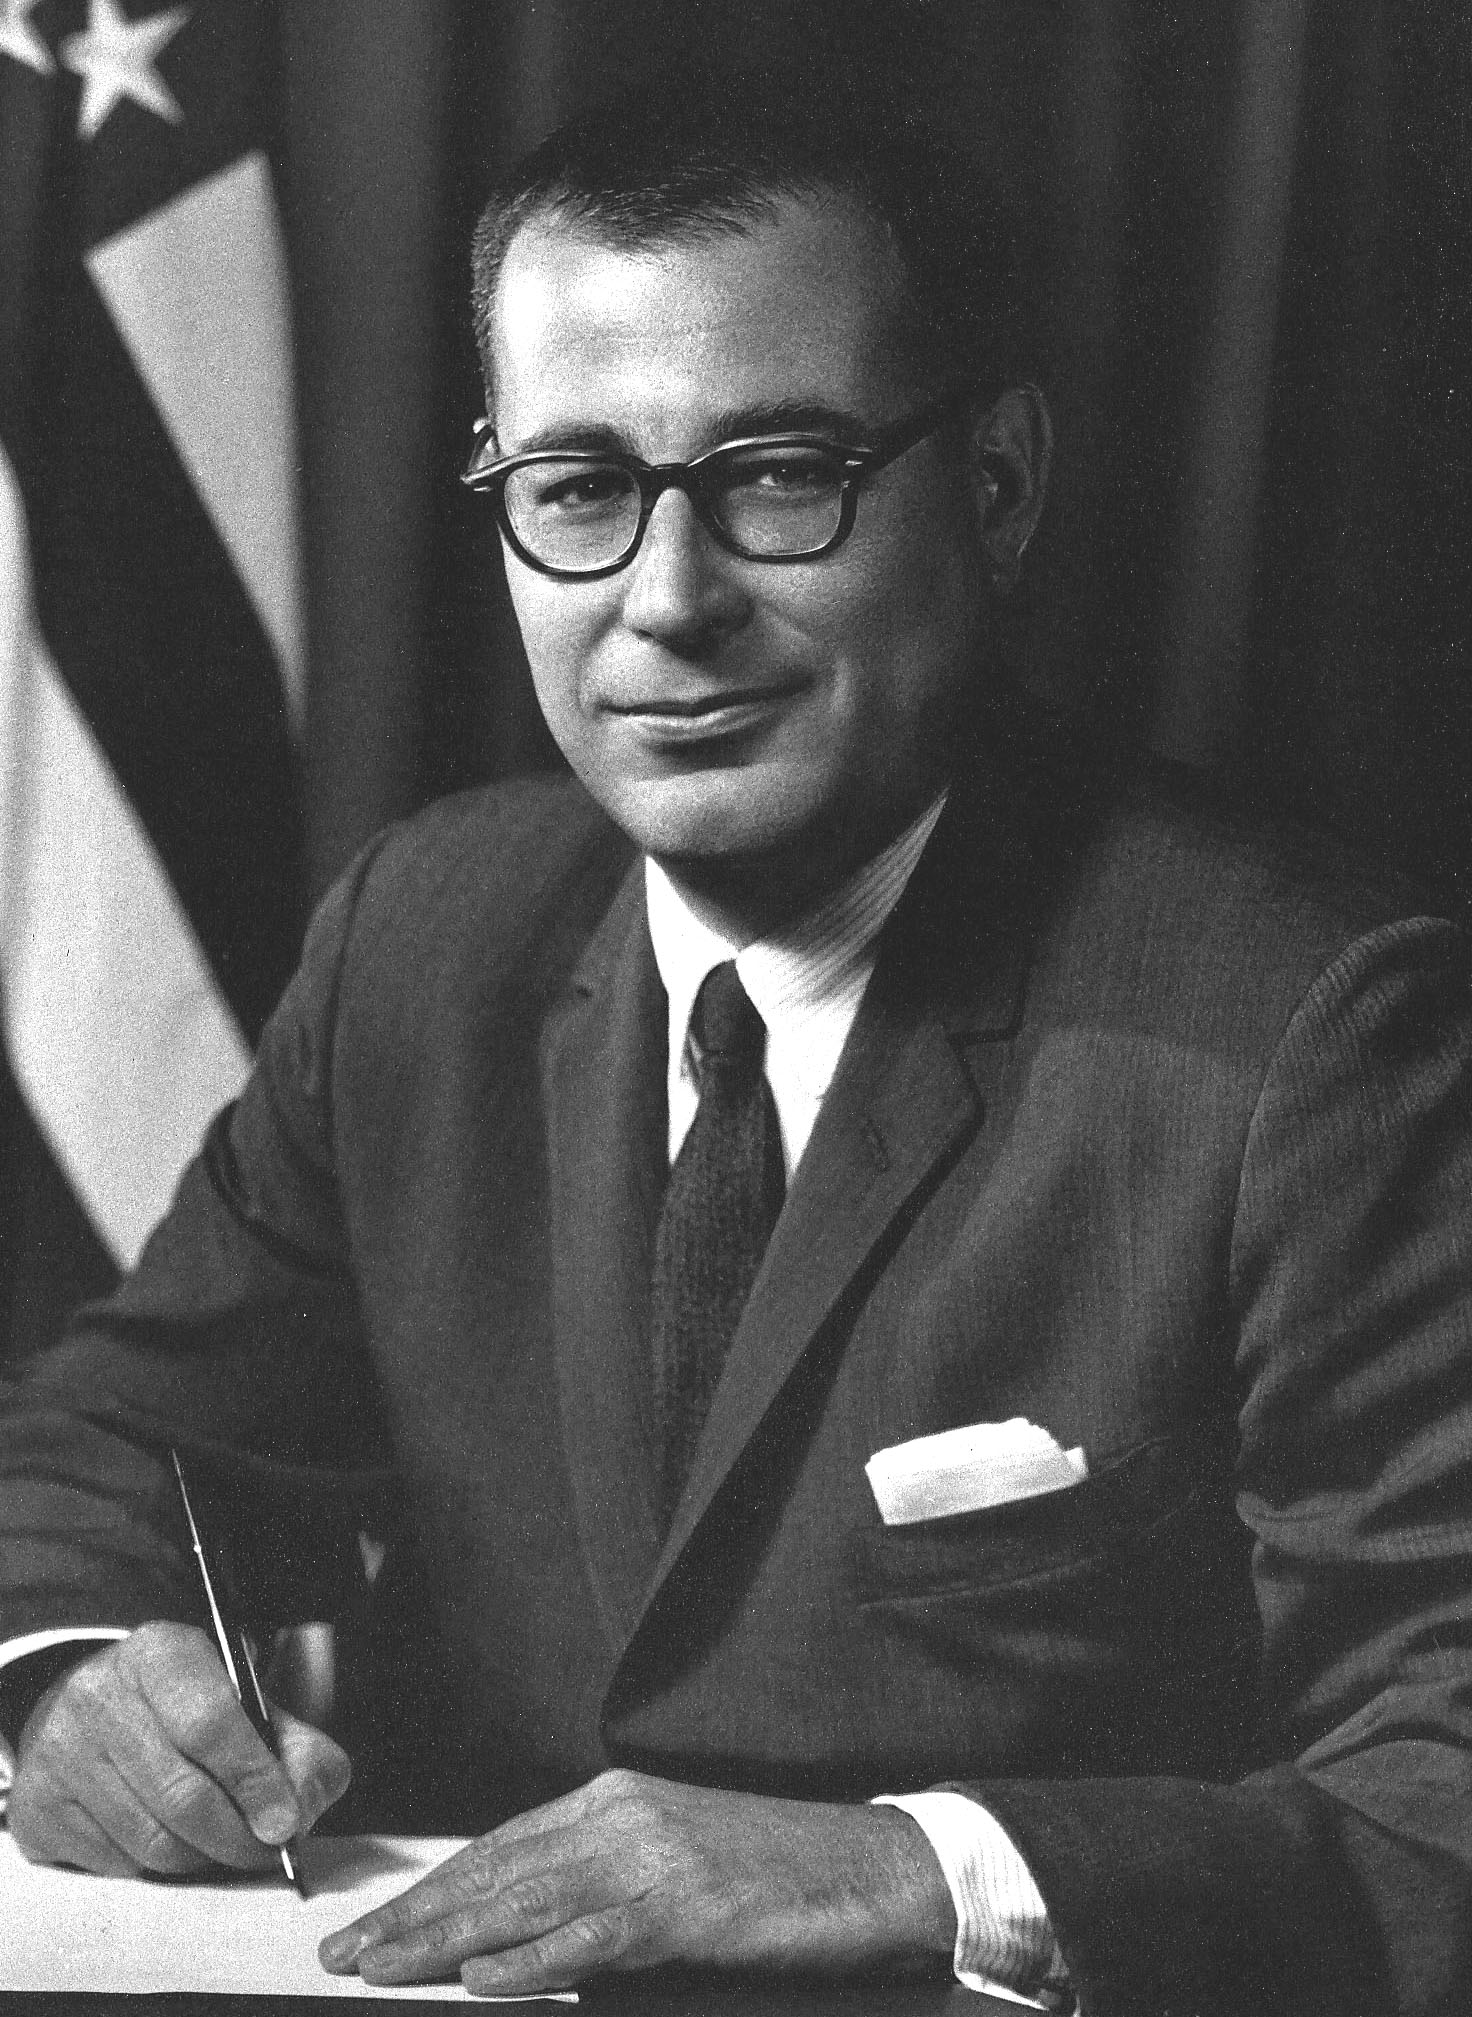 the former defense secretary harold browns national policy